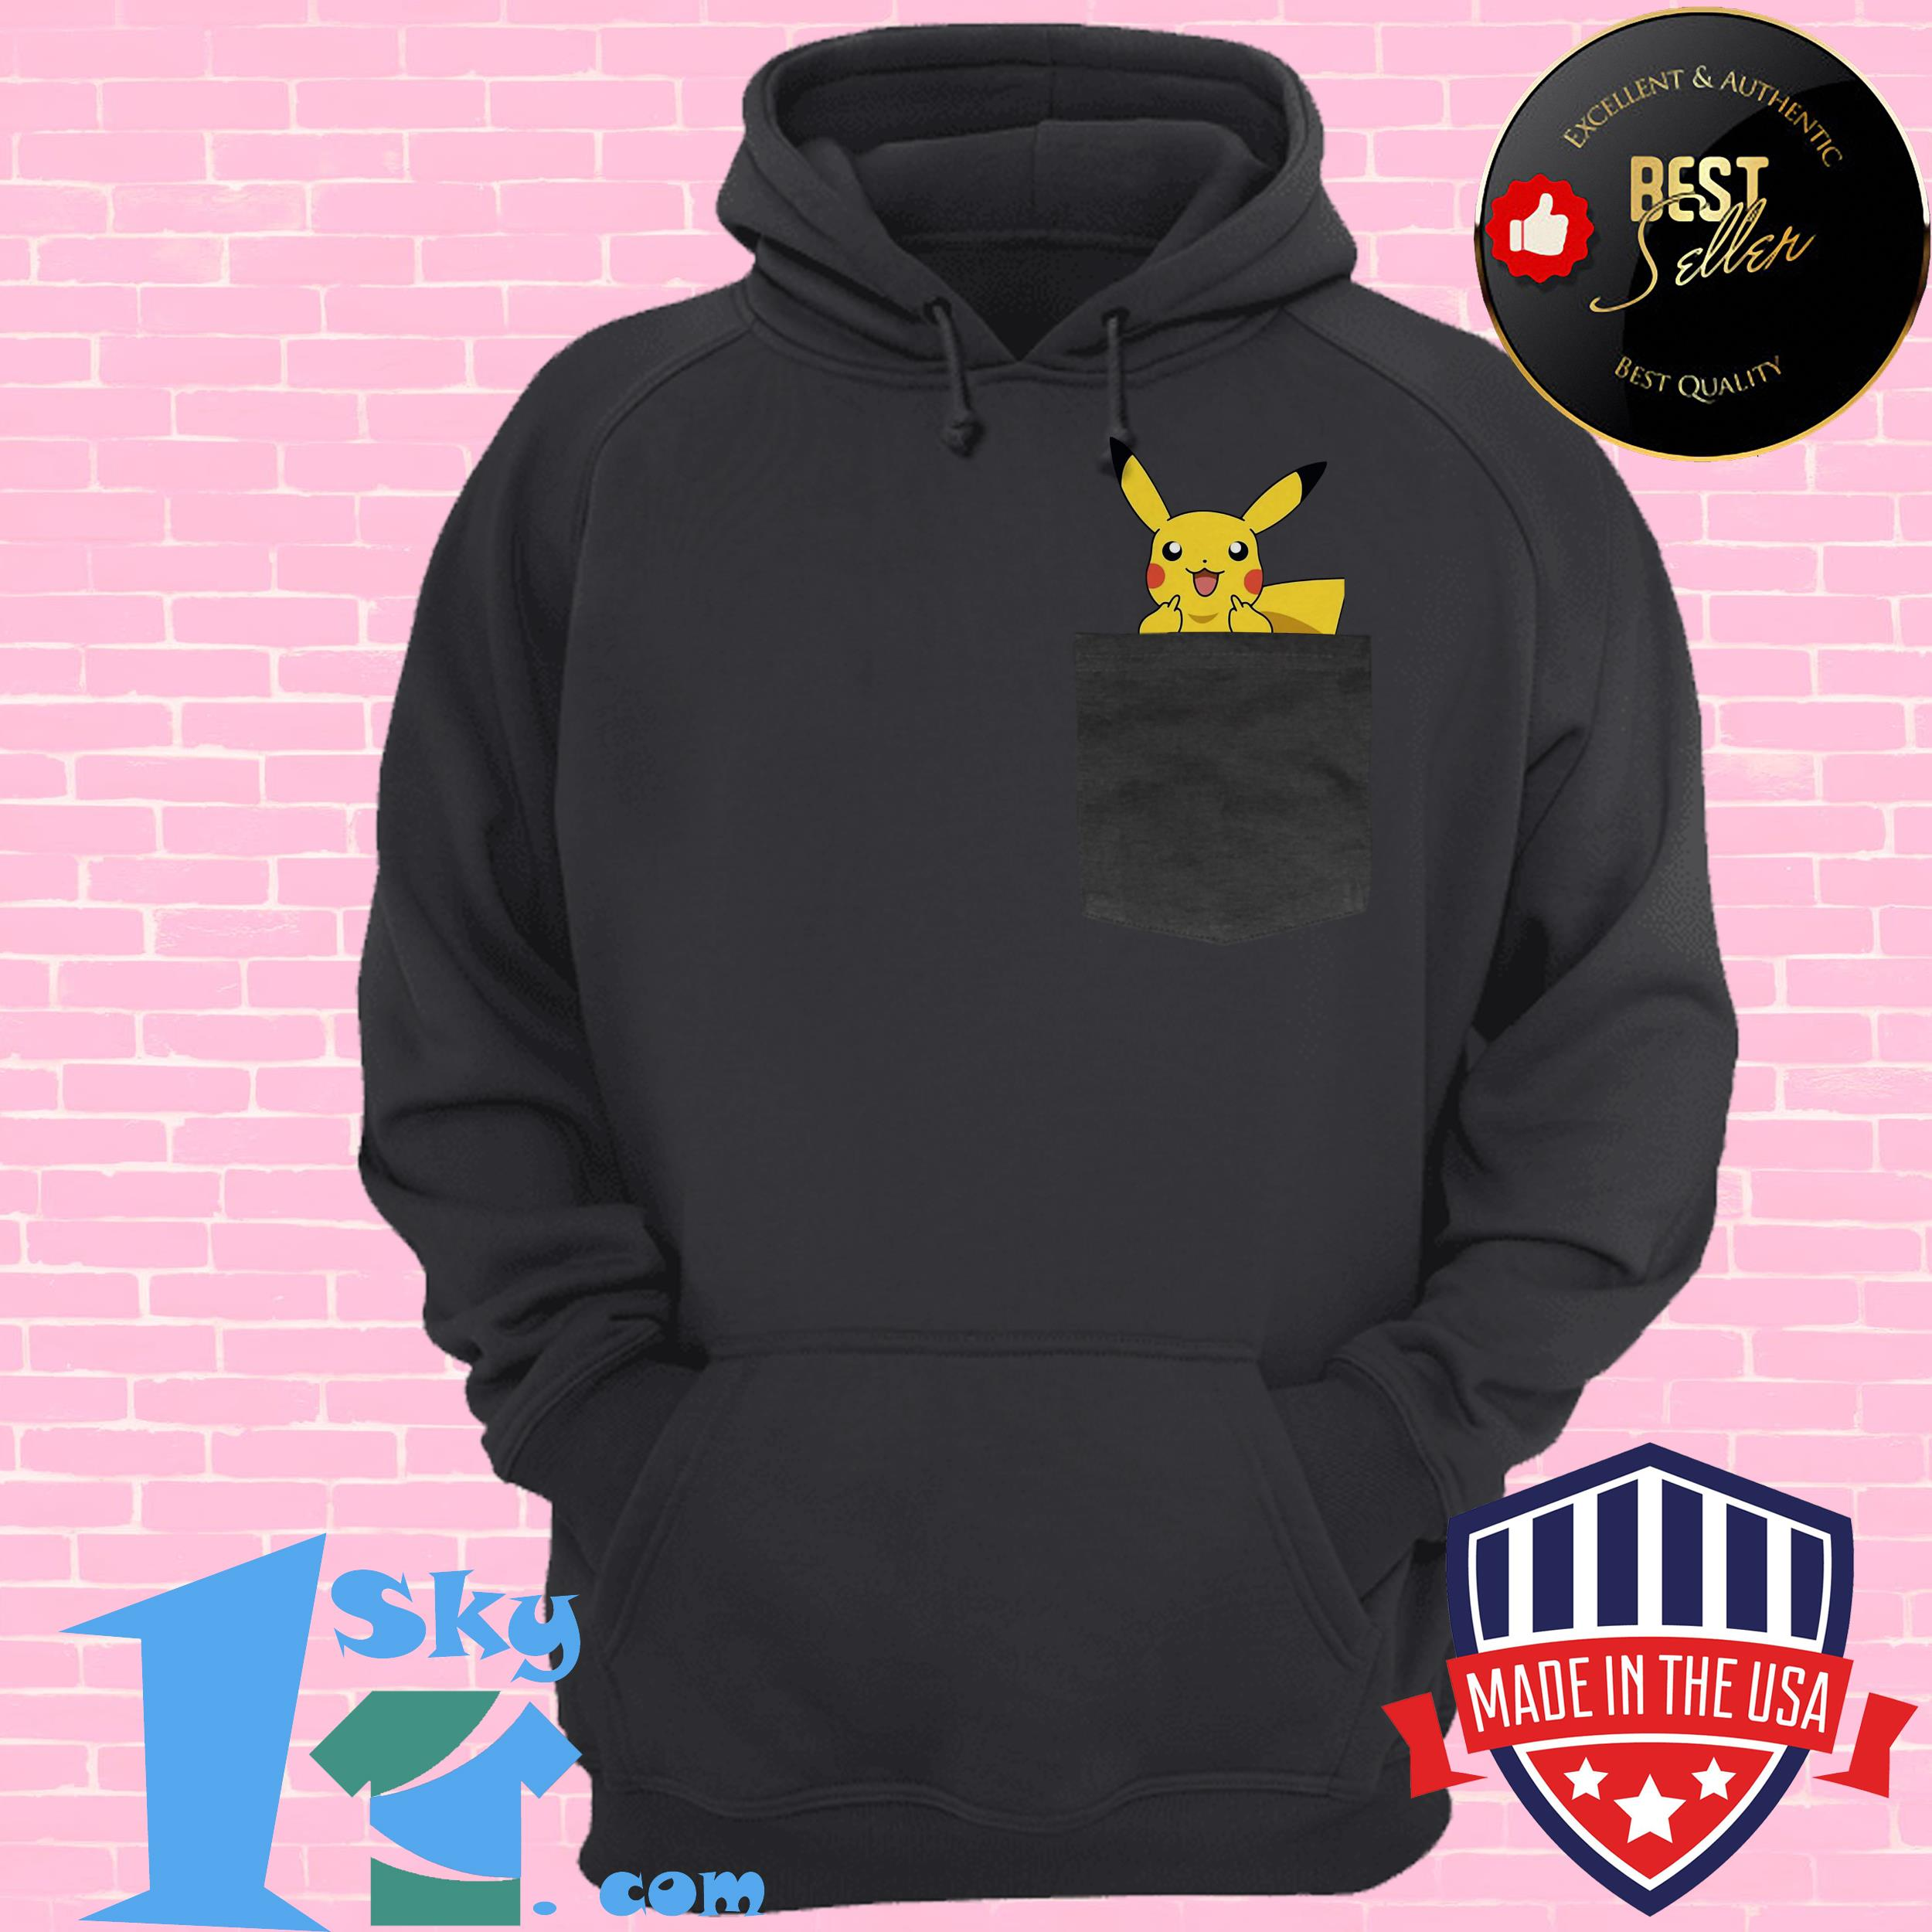 official surprised pikachu pocket cute hoodie - Official Surprised Pikachu Pocket Cute shirt